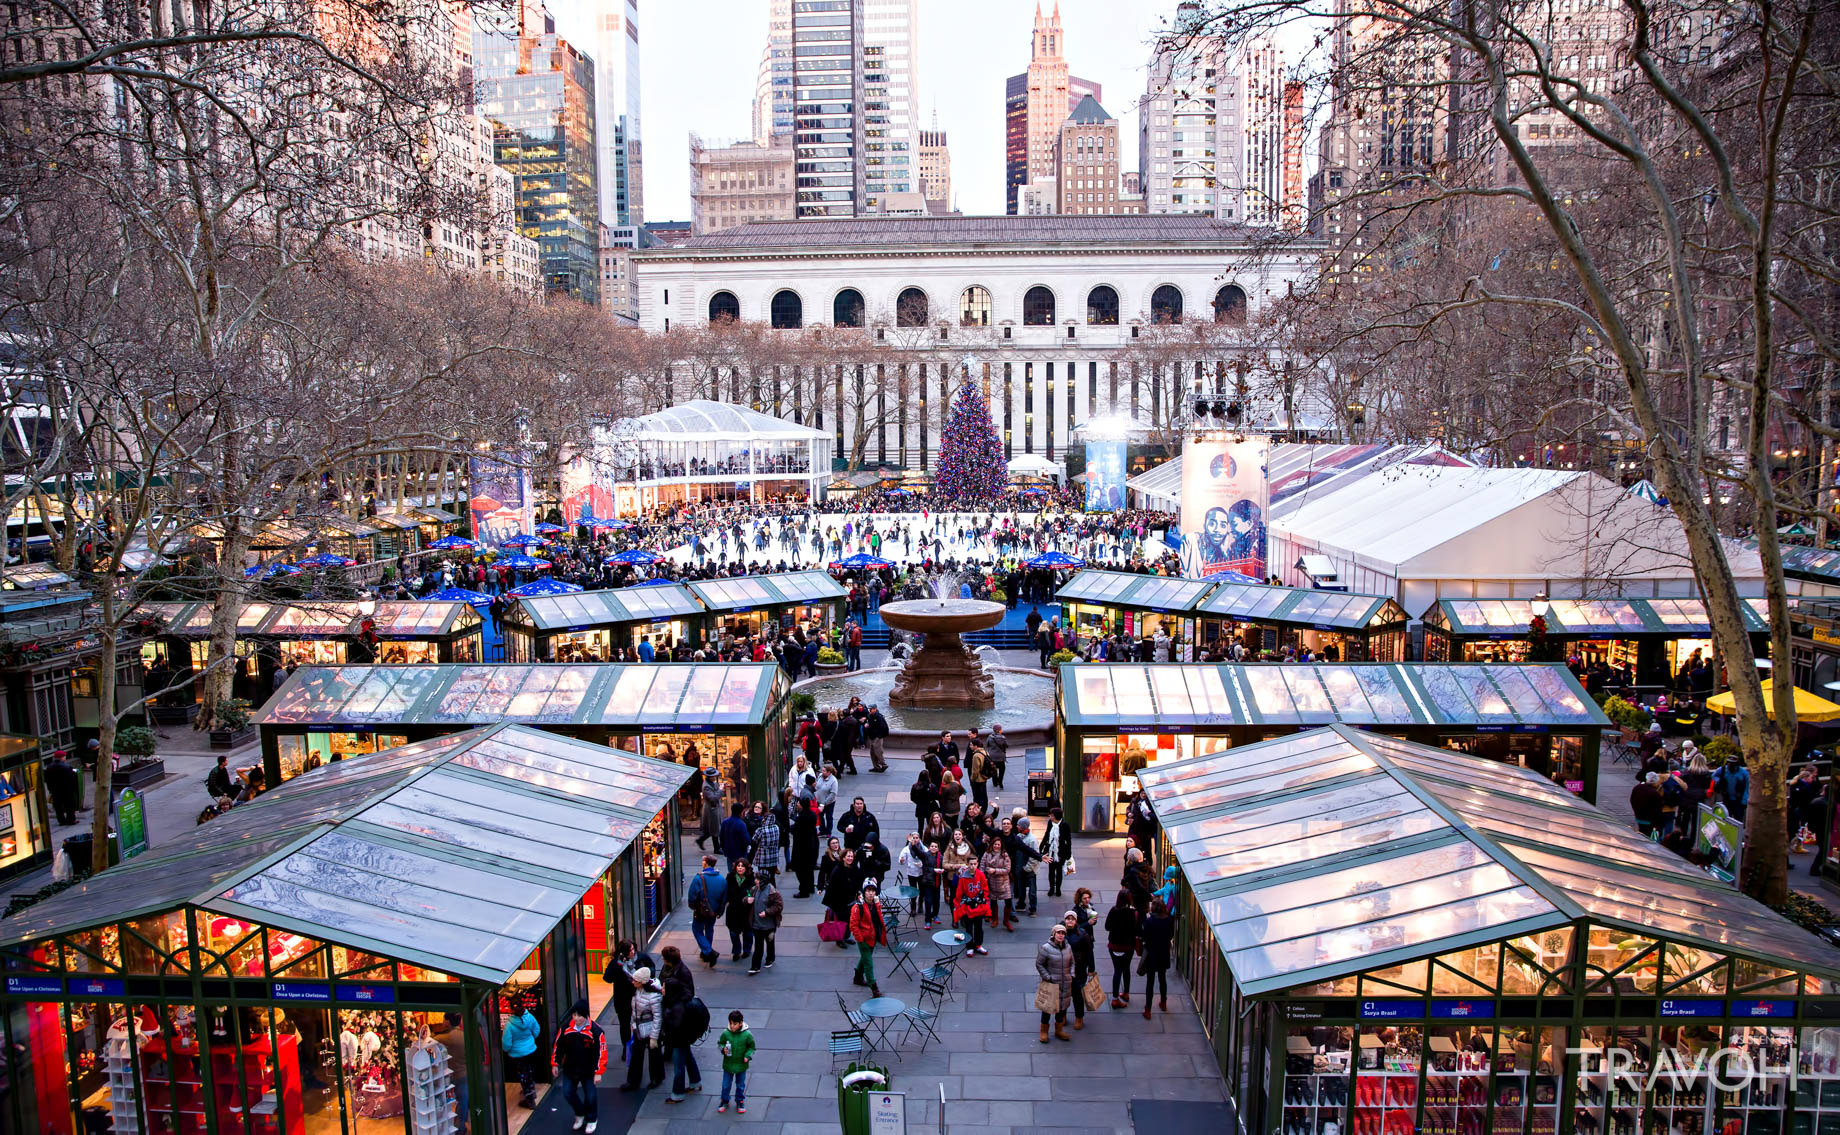 The Bryant Park Winter Village in New York City